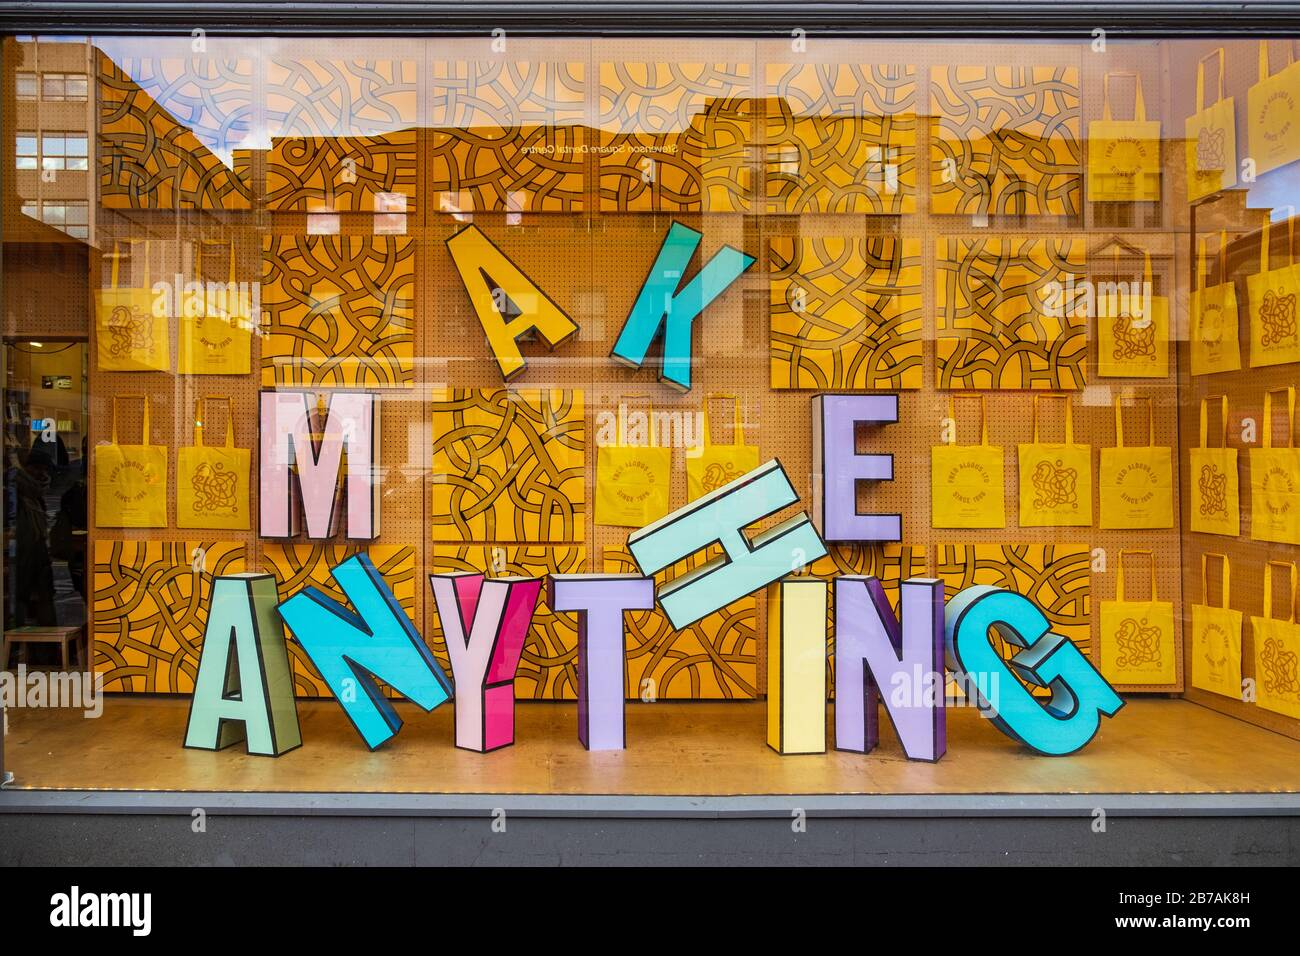 Manchester, United Kingdom - March 1, 2020: Shop window of Fred Aldous Art and Craft Shop in Manchester Stock Photo